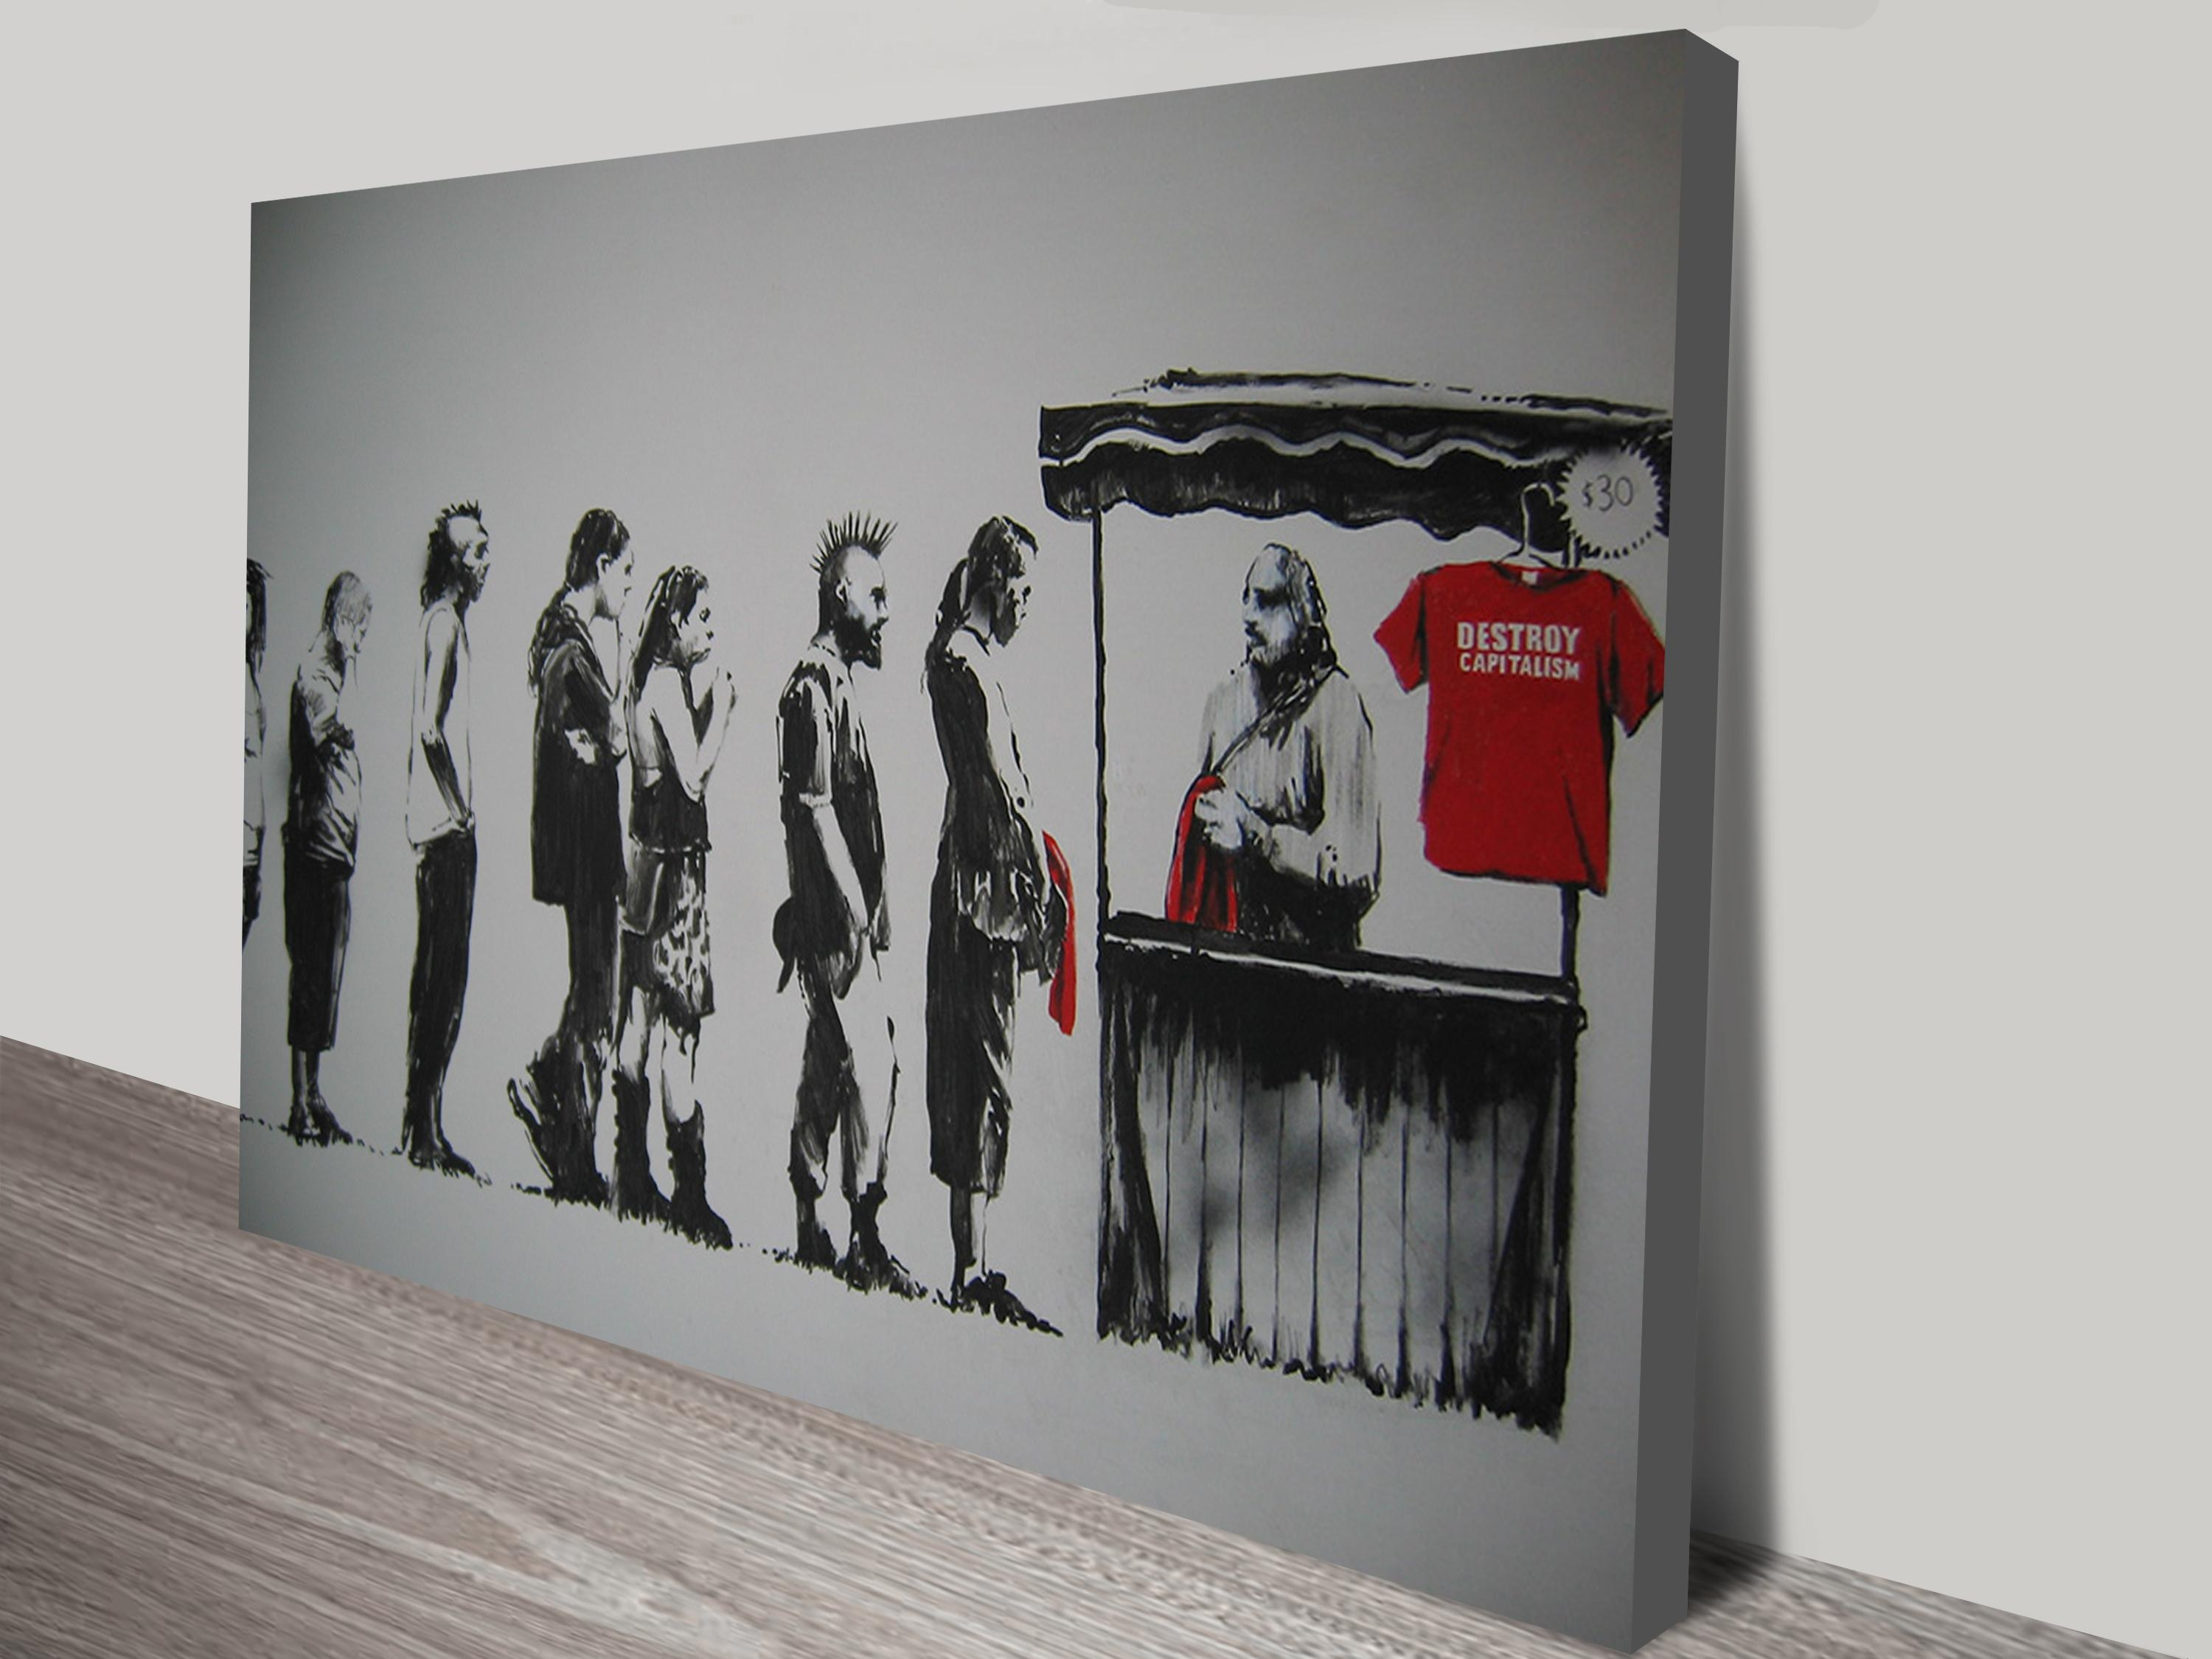 Destroy Capitalism Canvas Wall Art Australia Regarding Banksy Canvas Wall Art (Image 18 of 20)